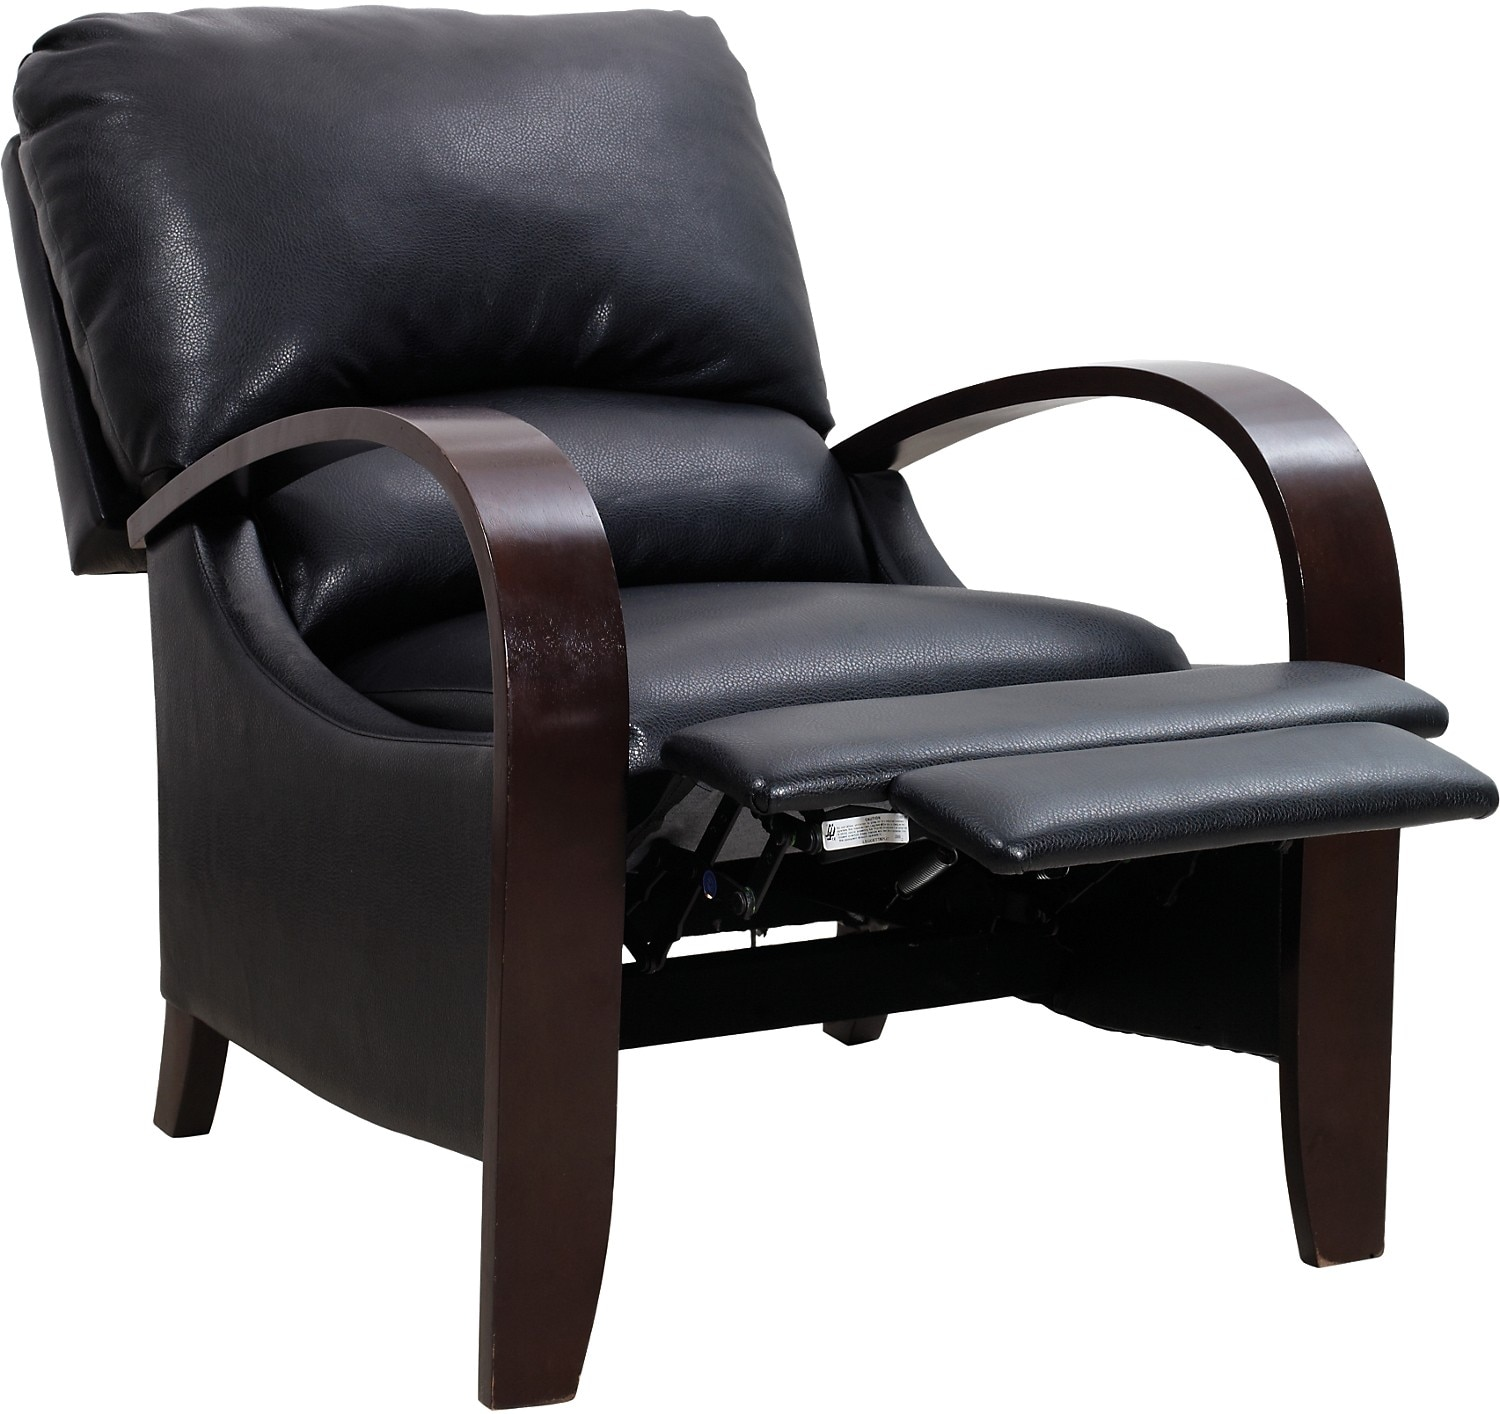 Living Room With Black Sectional And Accent Chair: Aaron Black Reclining Accent Chair